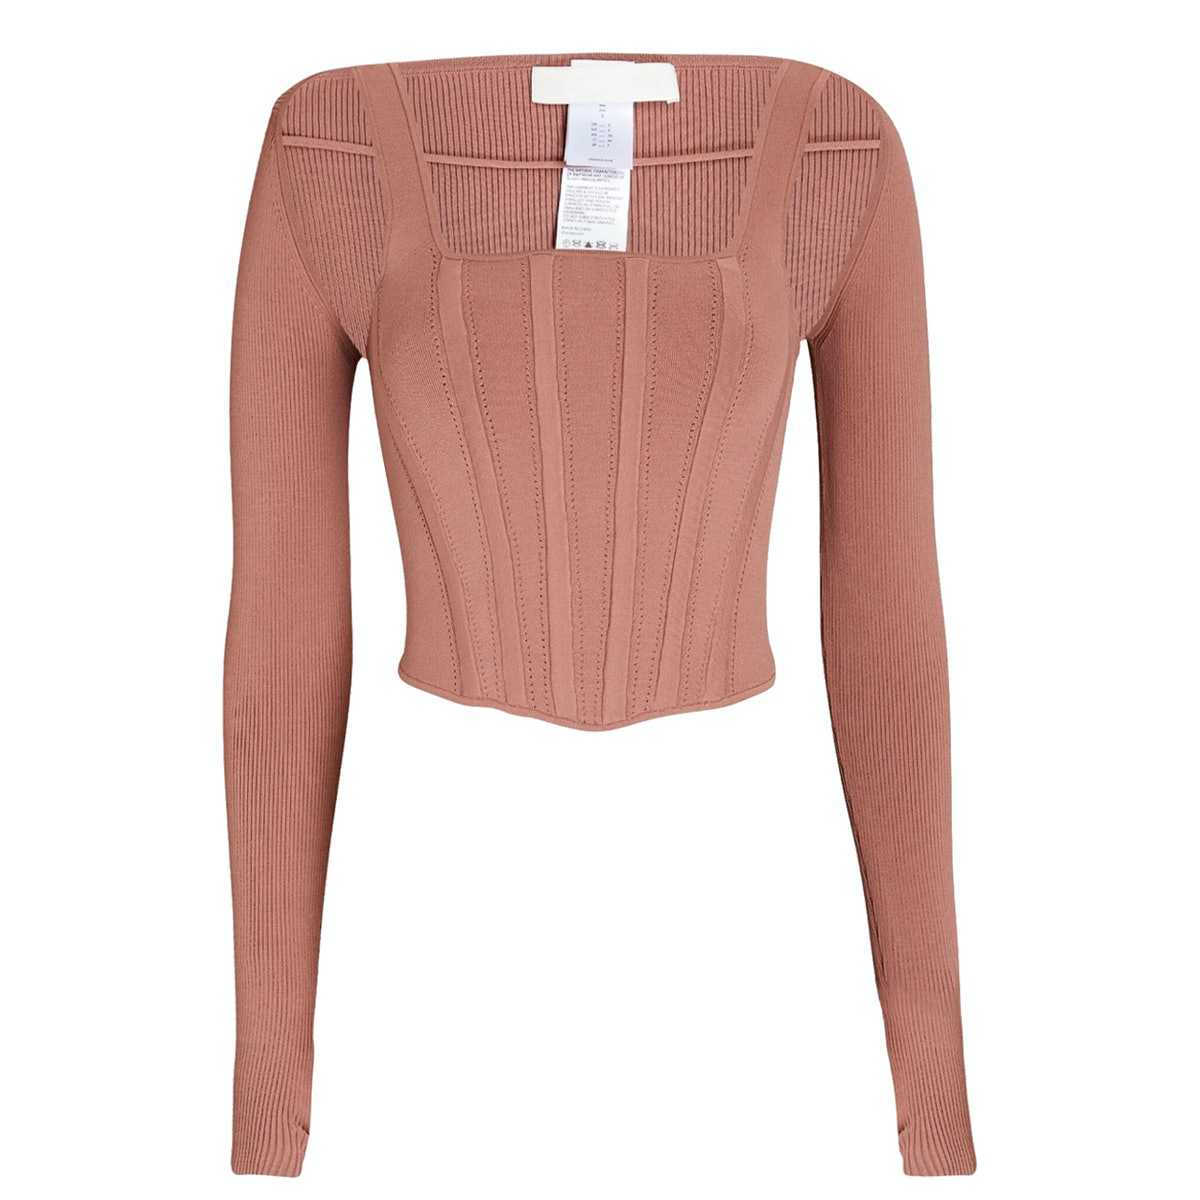 Dion Lee Pointelle Layered Jersey Corset Top